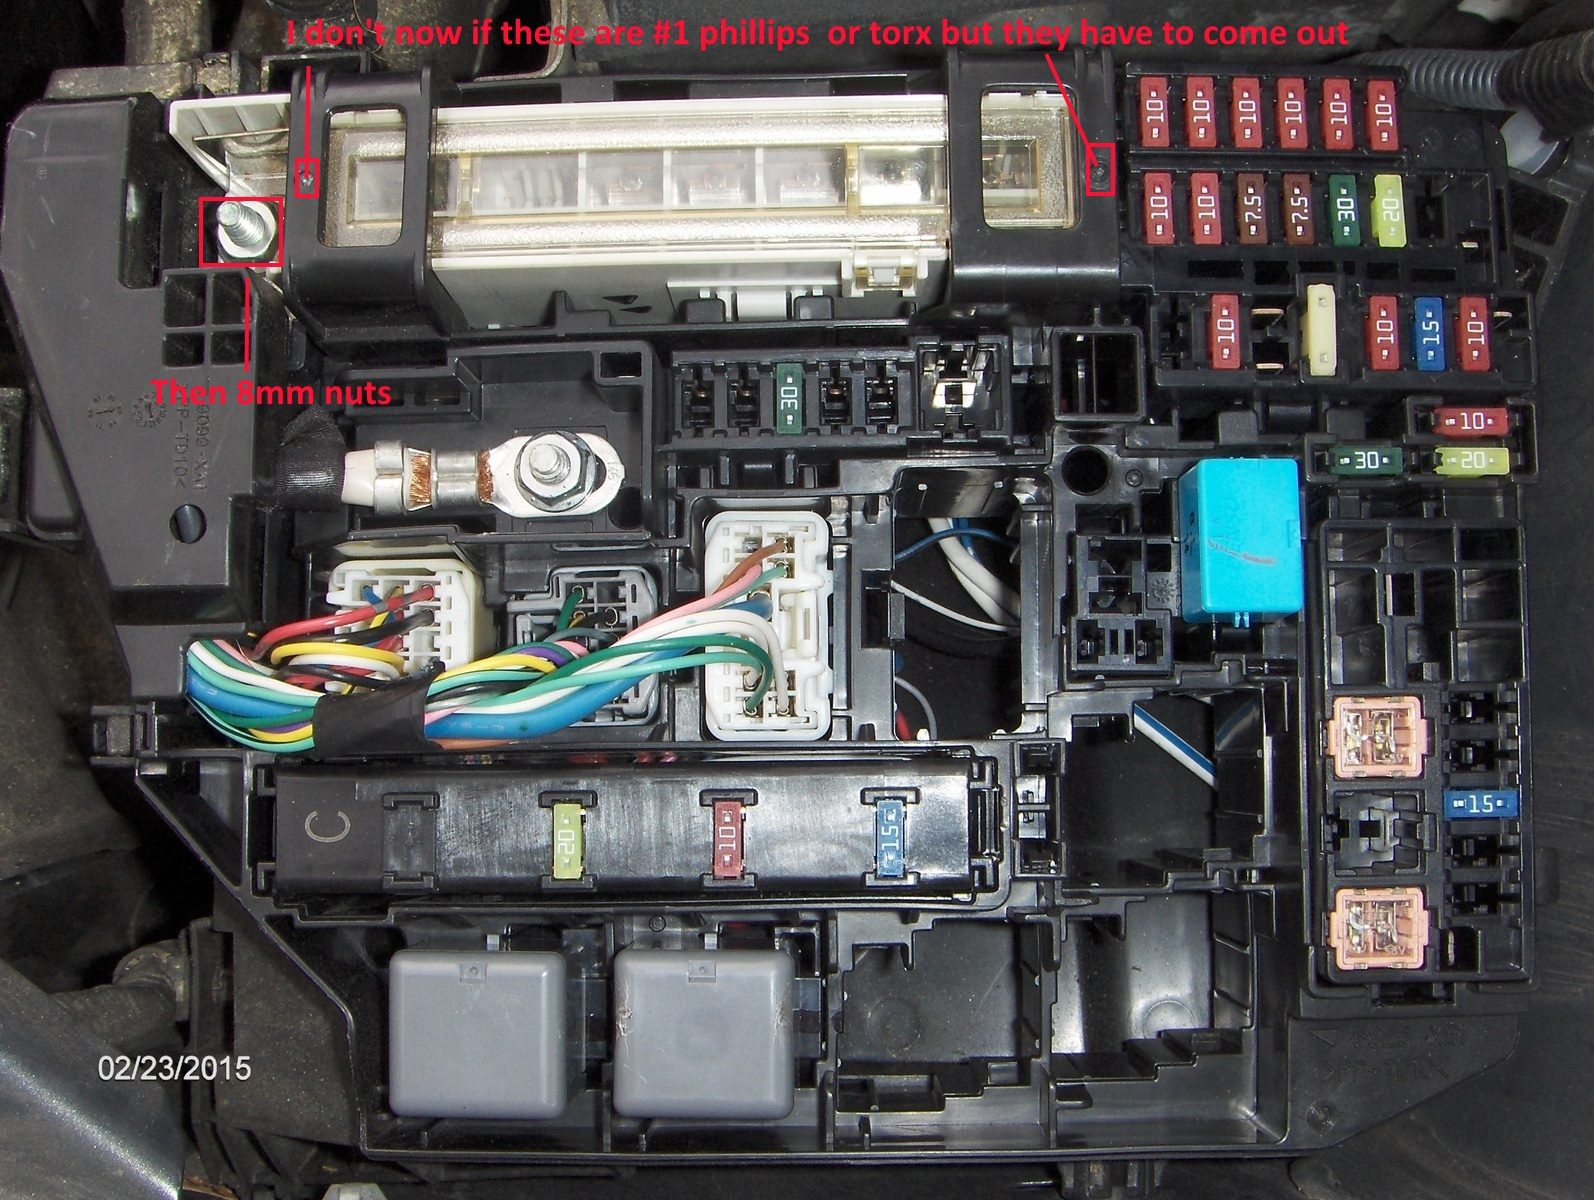 2003 toyota corolla alternator wiring diagram lotus in water plant install 2007 door www